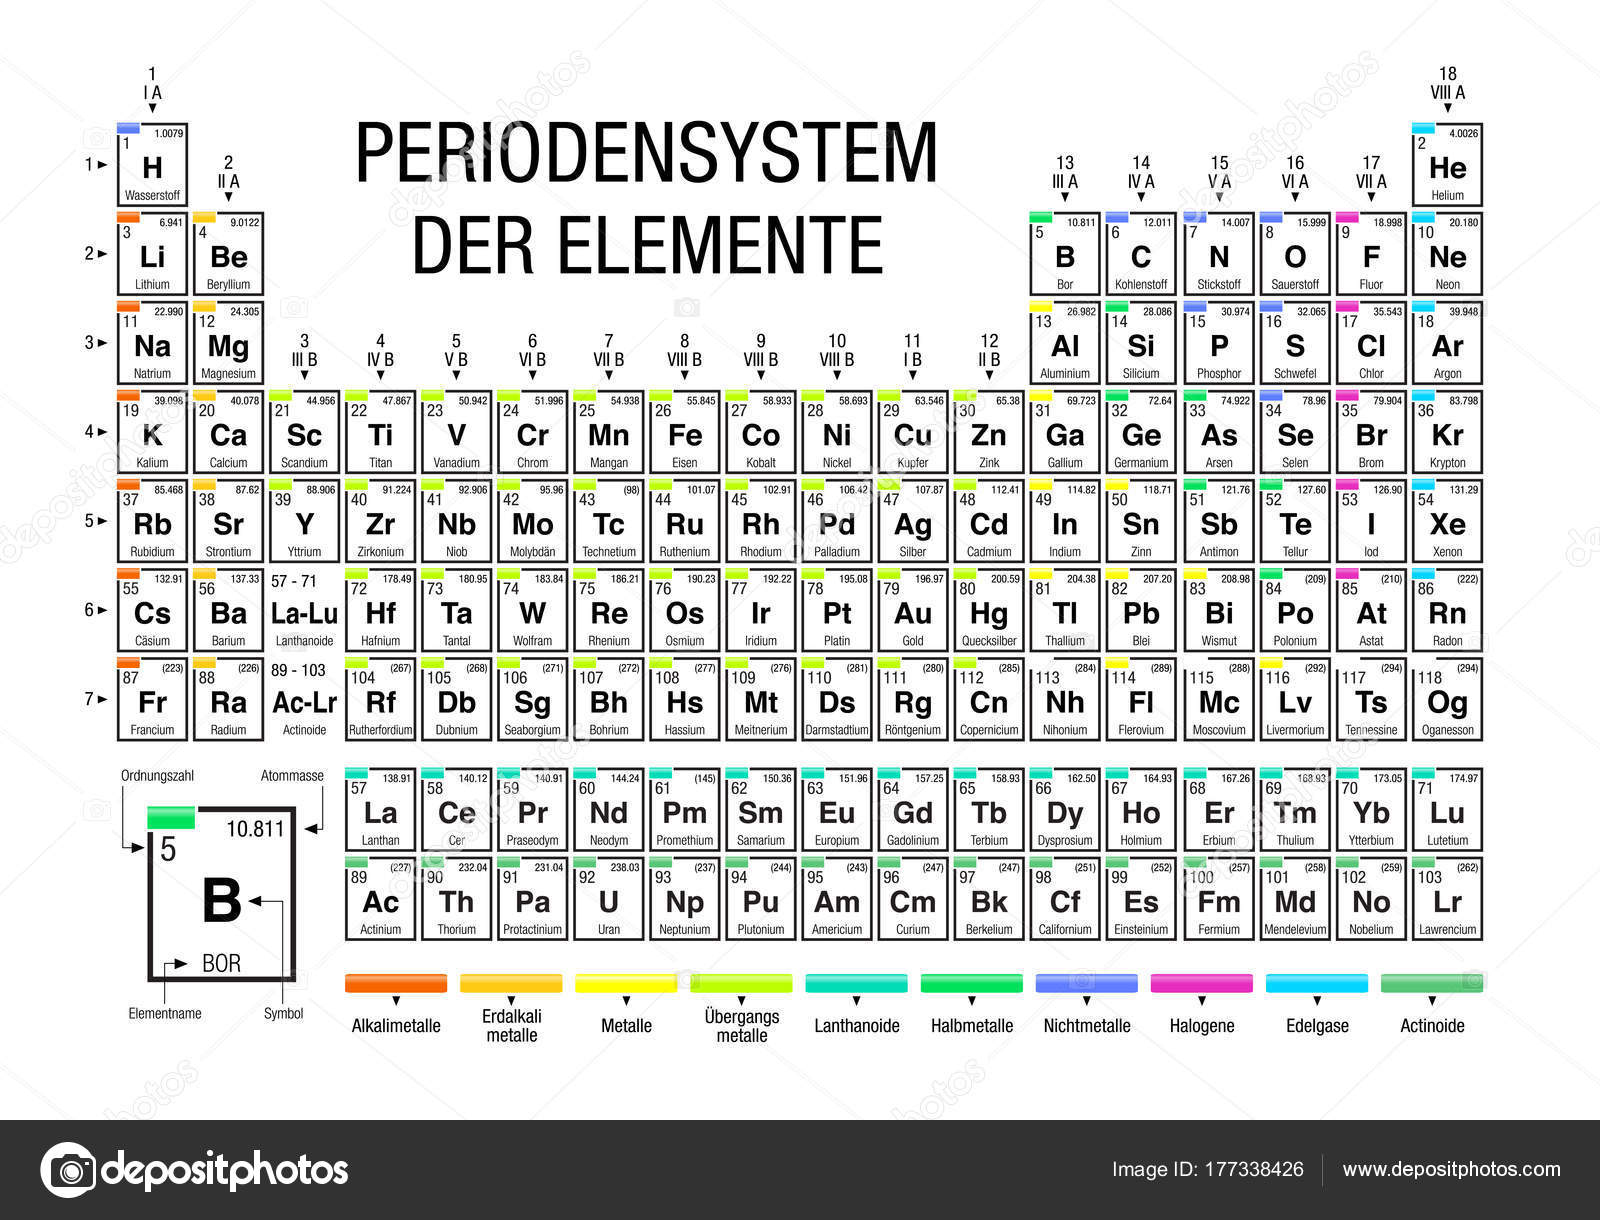 Periodensystem Der Elemente Periodic Table Elements German Language